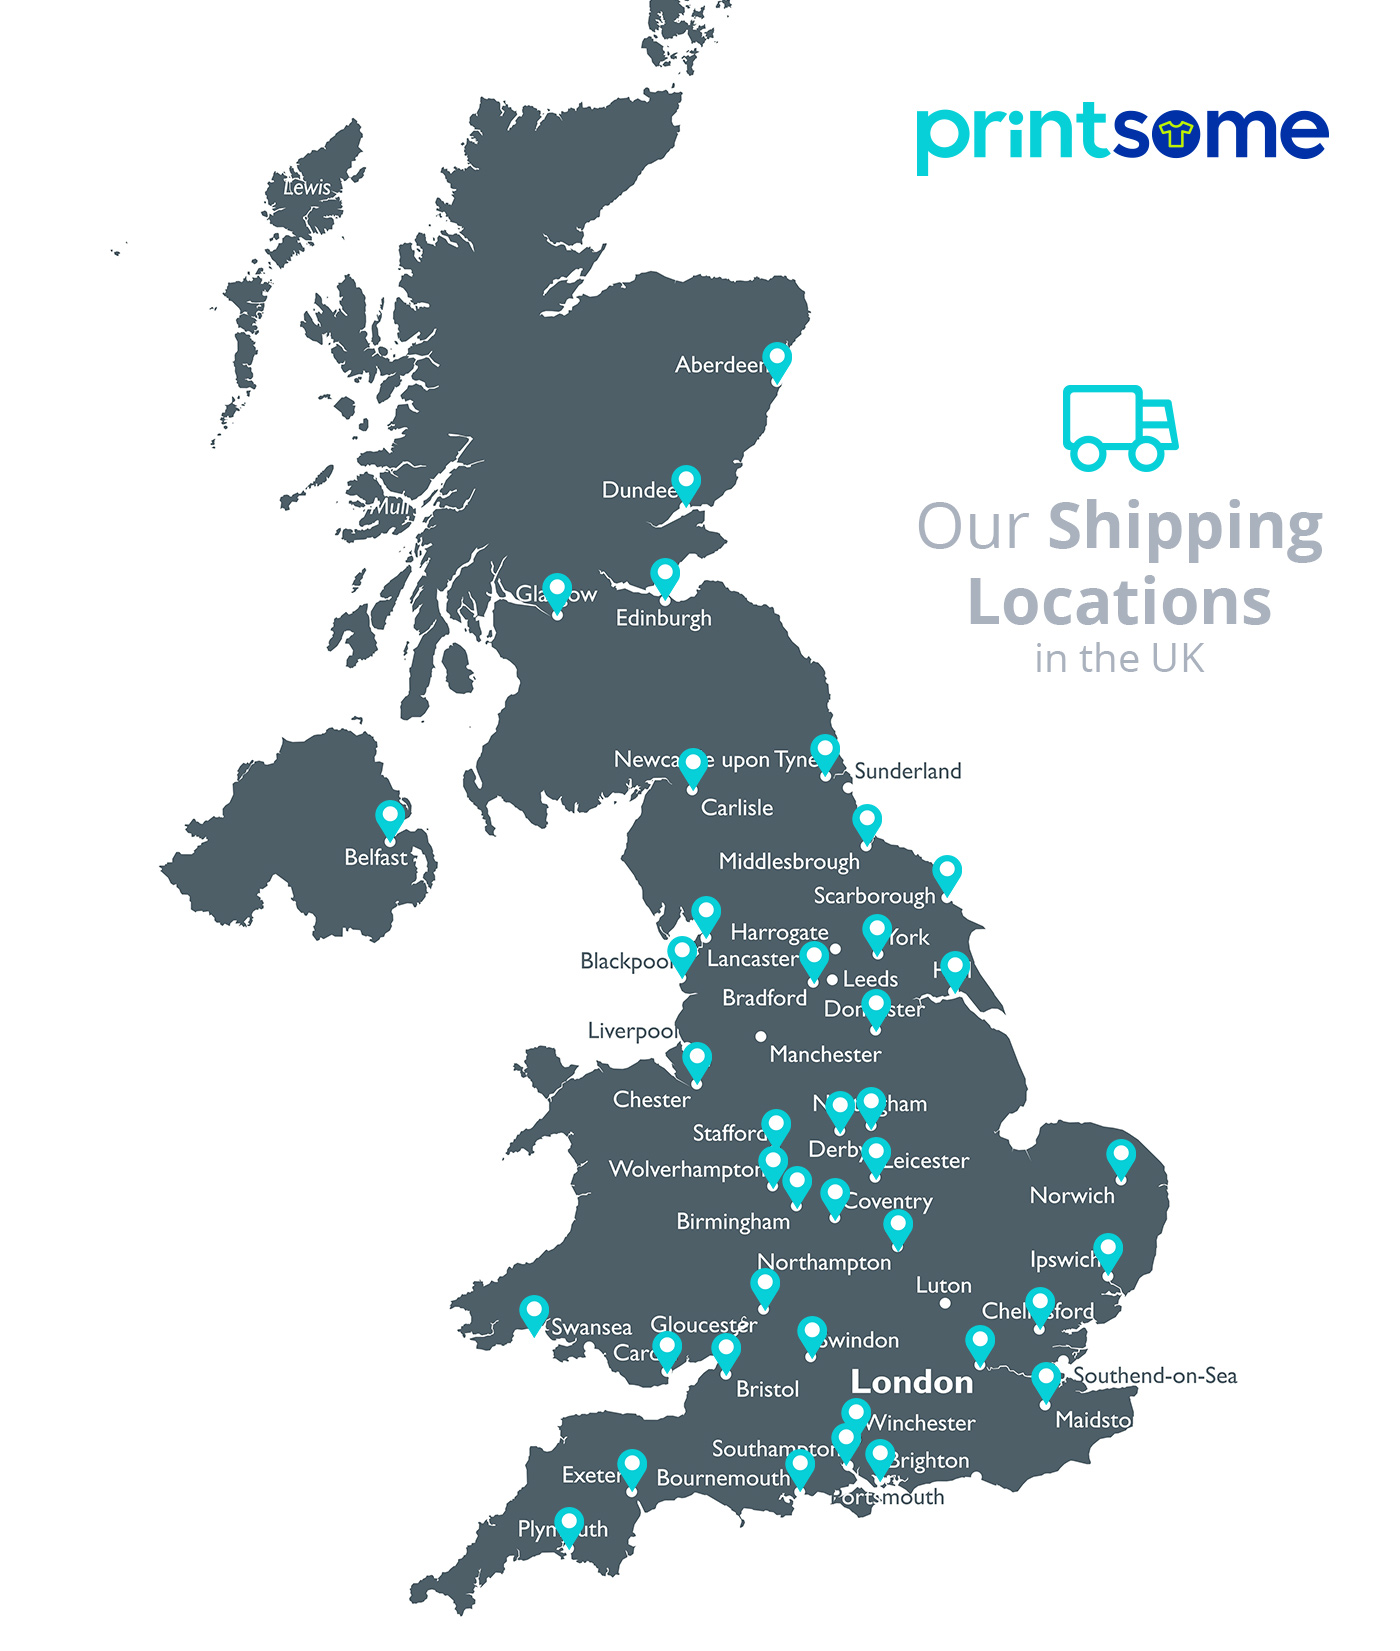 T shirt printing locations in UK map